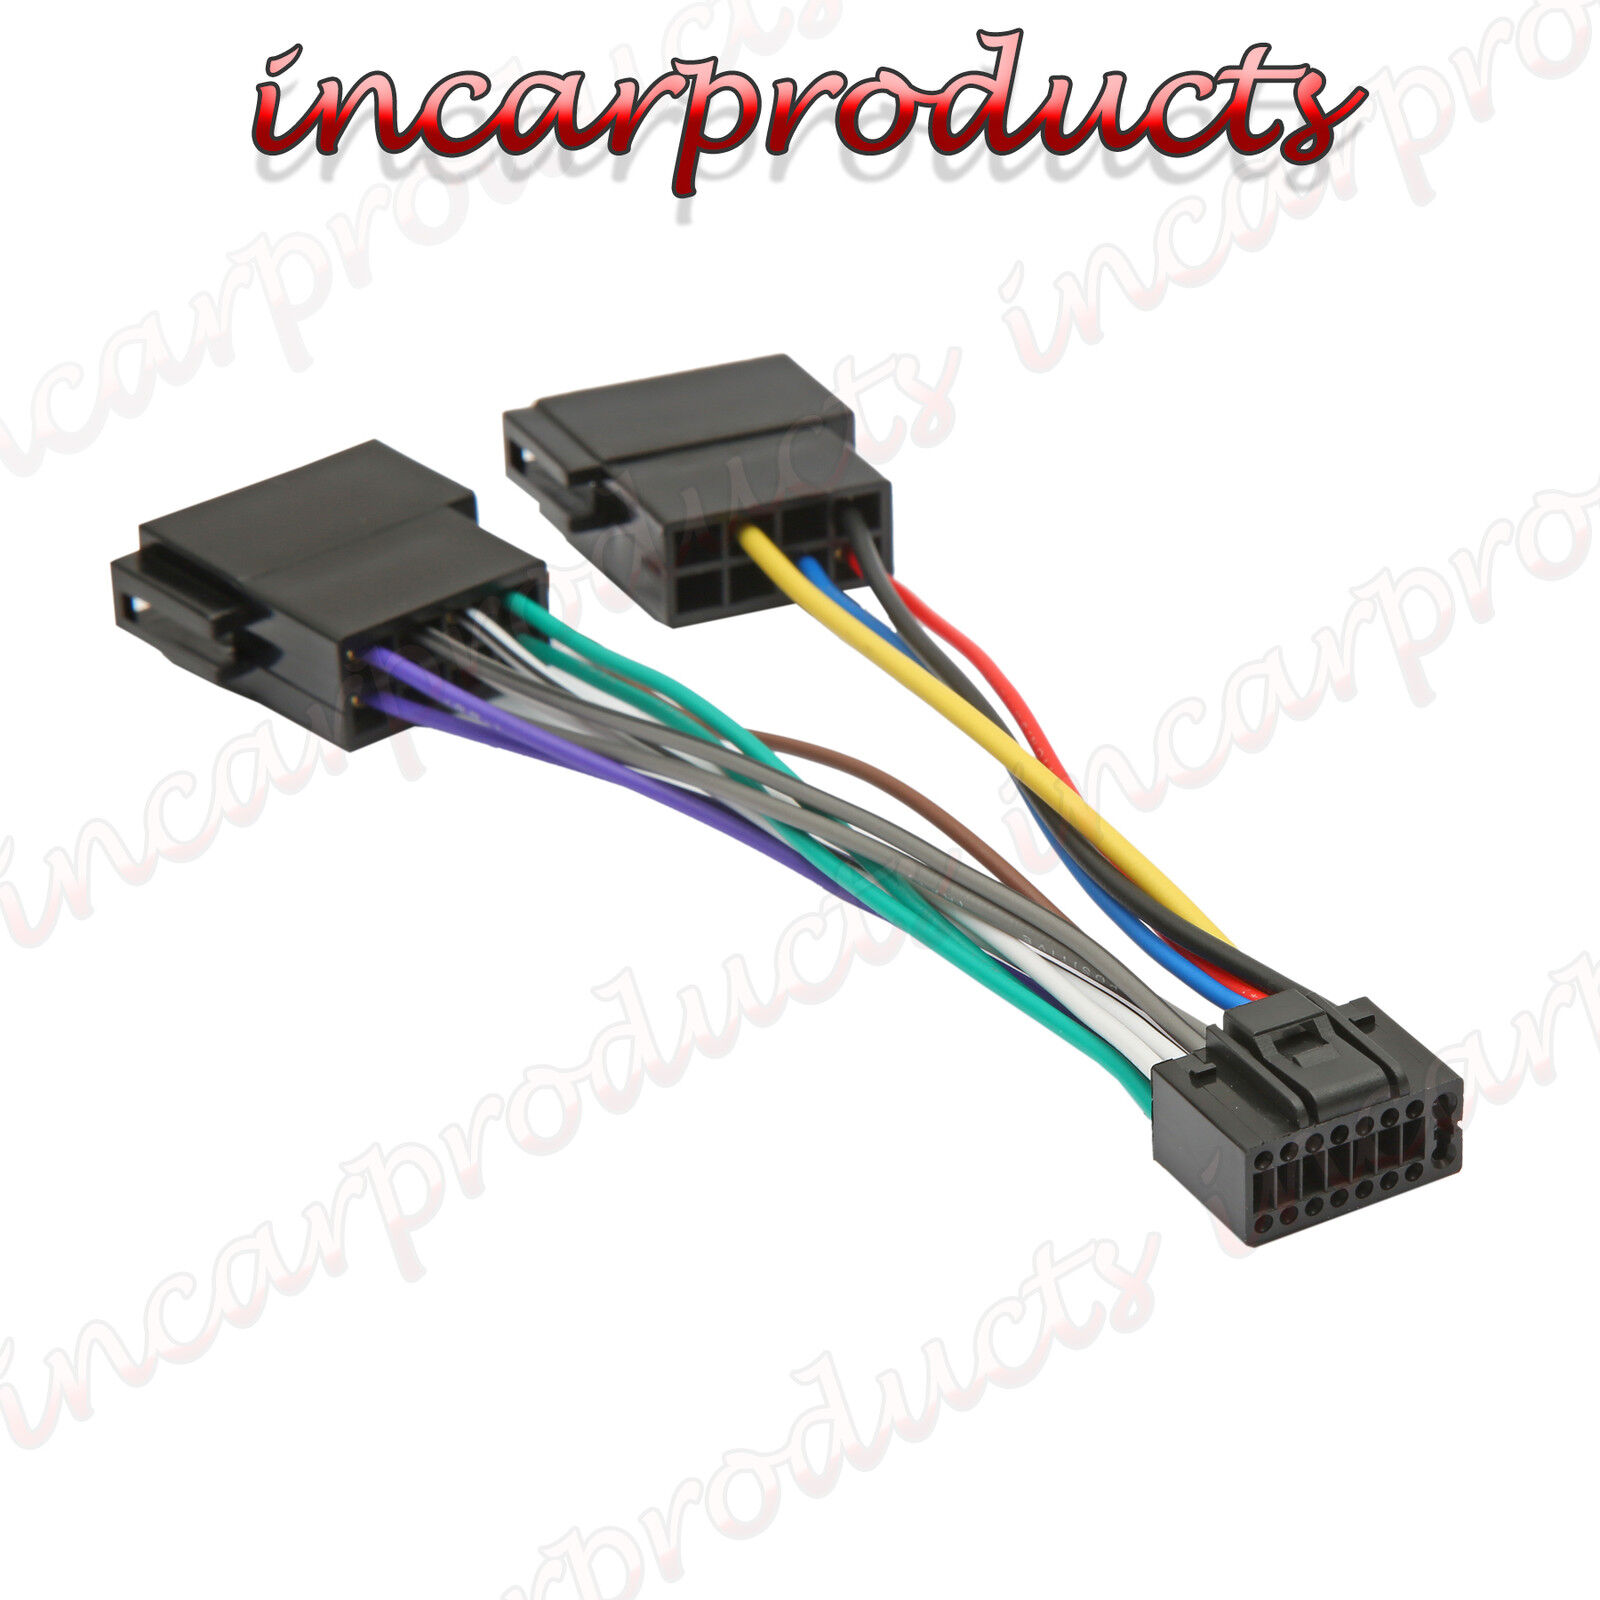 Kenwood car stereo wiring harness adapter wiring diagram kenwood jvc 16 pin iso wiring harness connector adaptor car stereo rh ebay com car stereo wiring diagram kenwood wiring harness colors asfbconference2016 Image collections